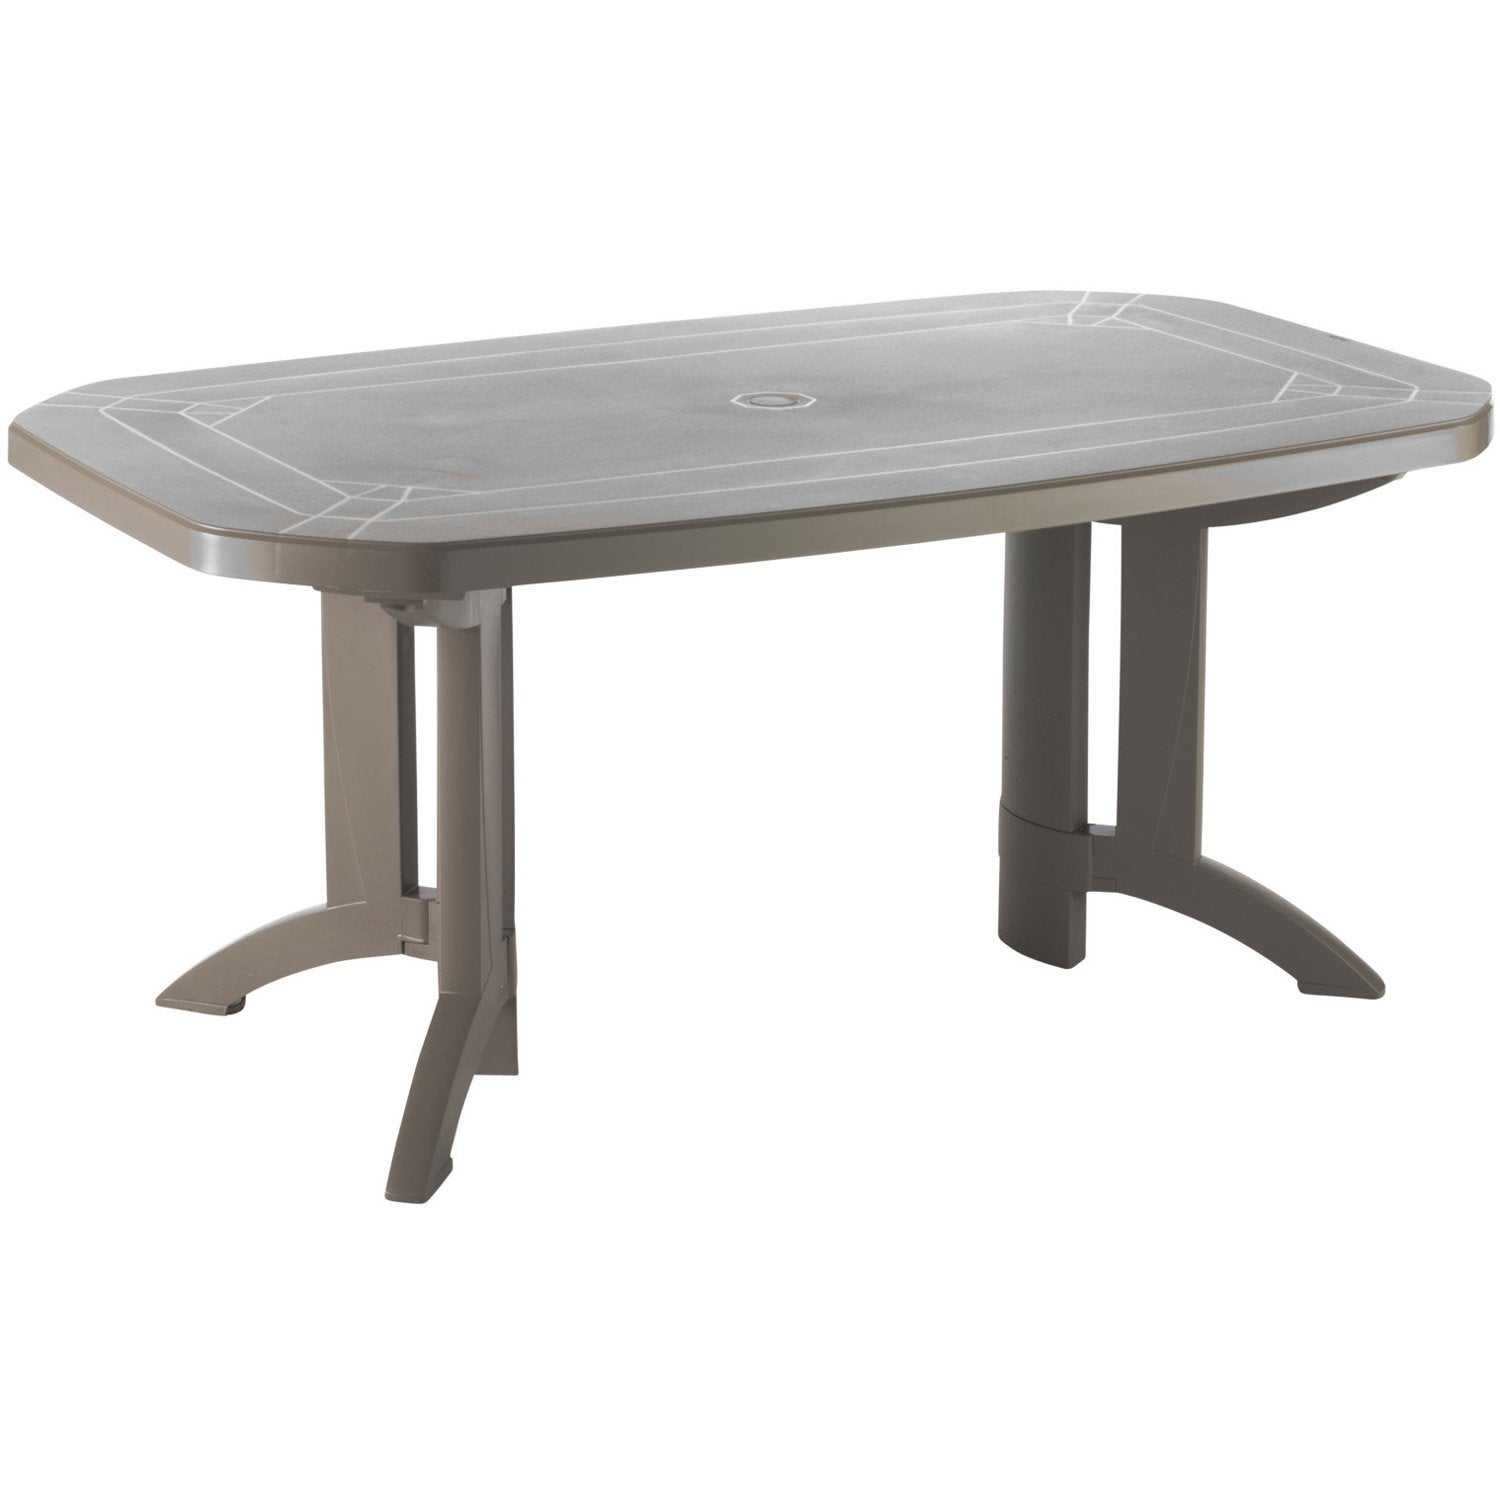 Unique De Table En Plastique De Jardin